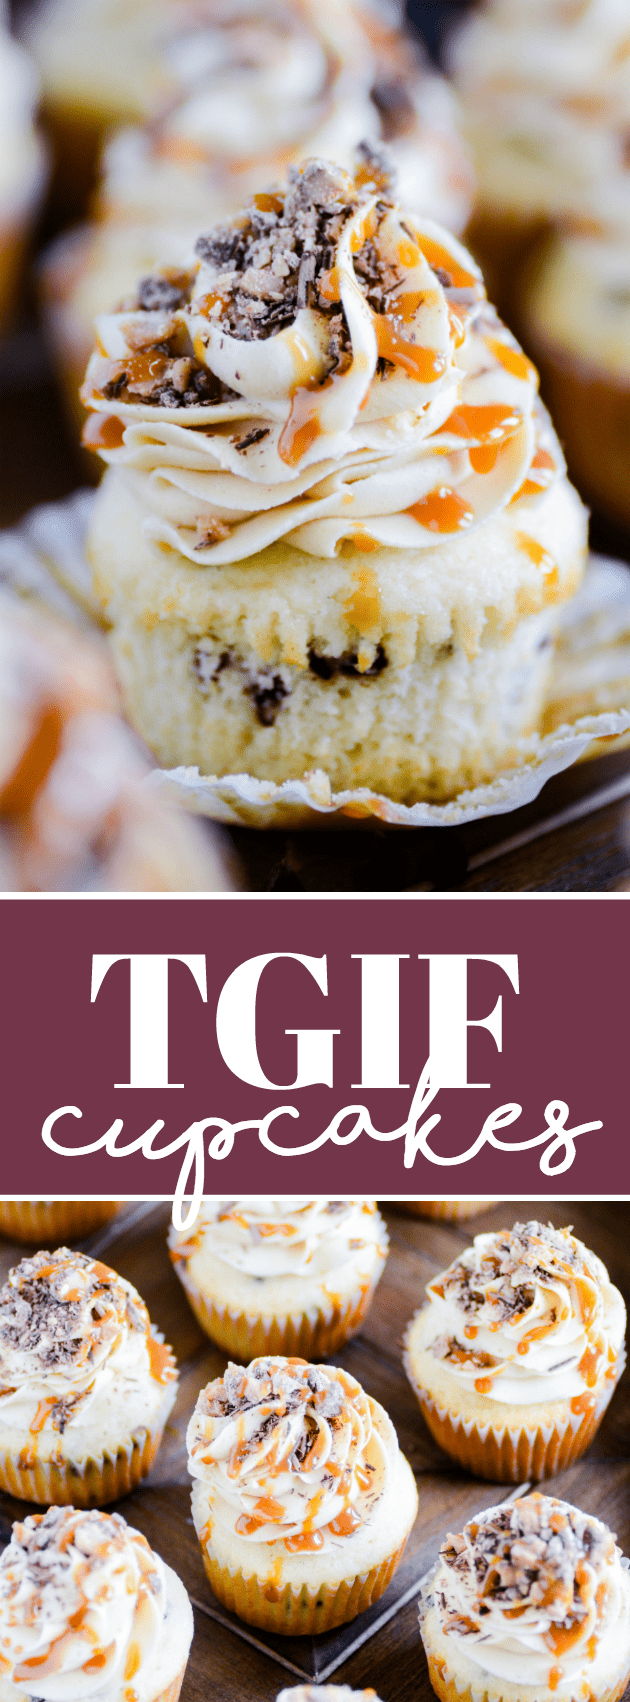 Vanilla cupcakes studded with chocolate chips and topped with peanut butter frosting, chocolate shavings, toffee, and butterscotch caramel. A cupcake worthy of the name TGIF!